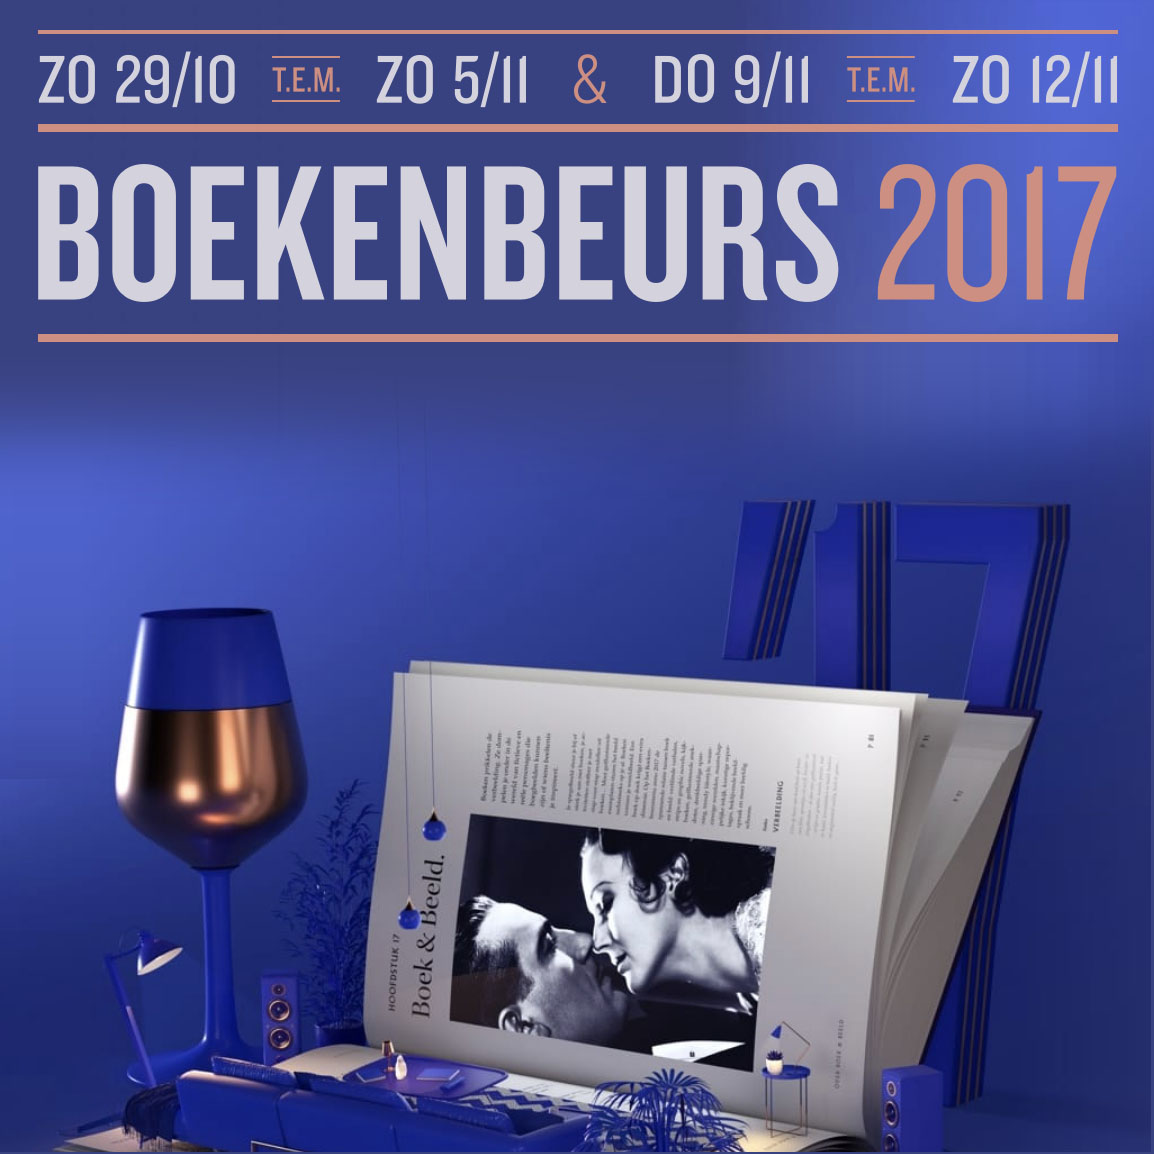 Empty the fridge - Boekenbeurs 2017